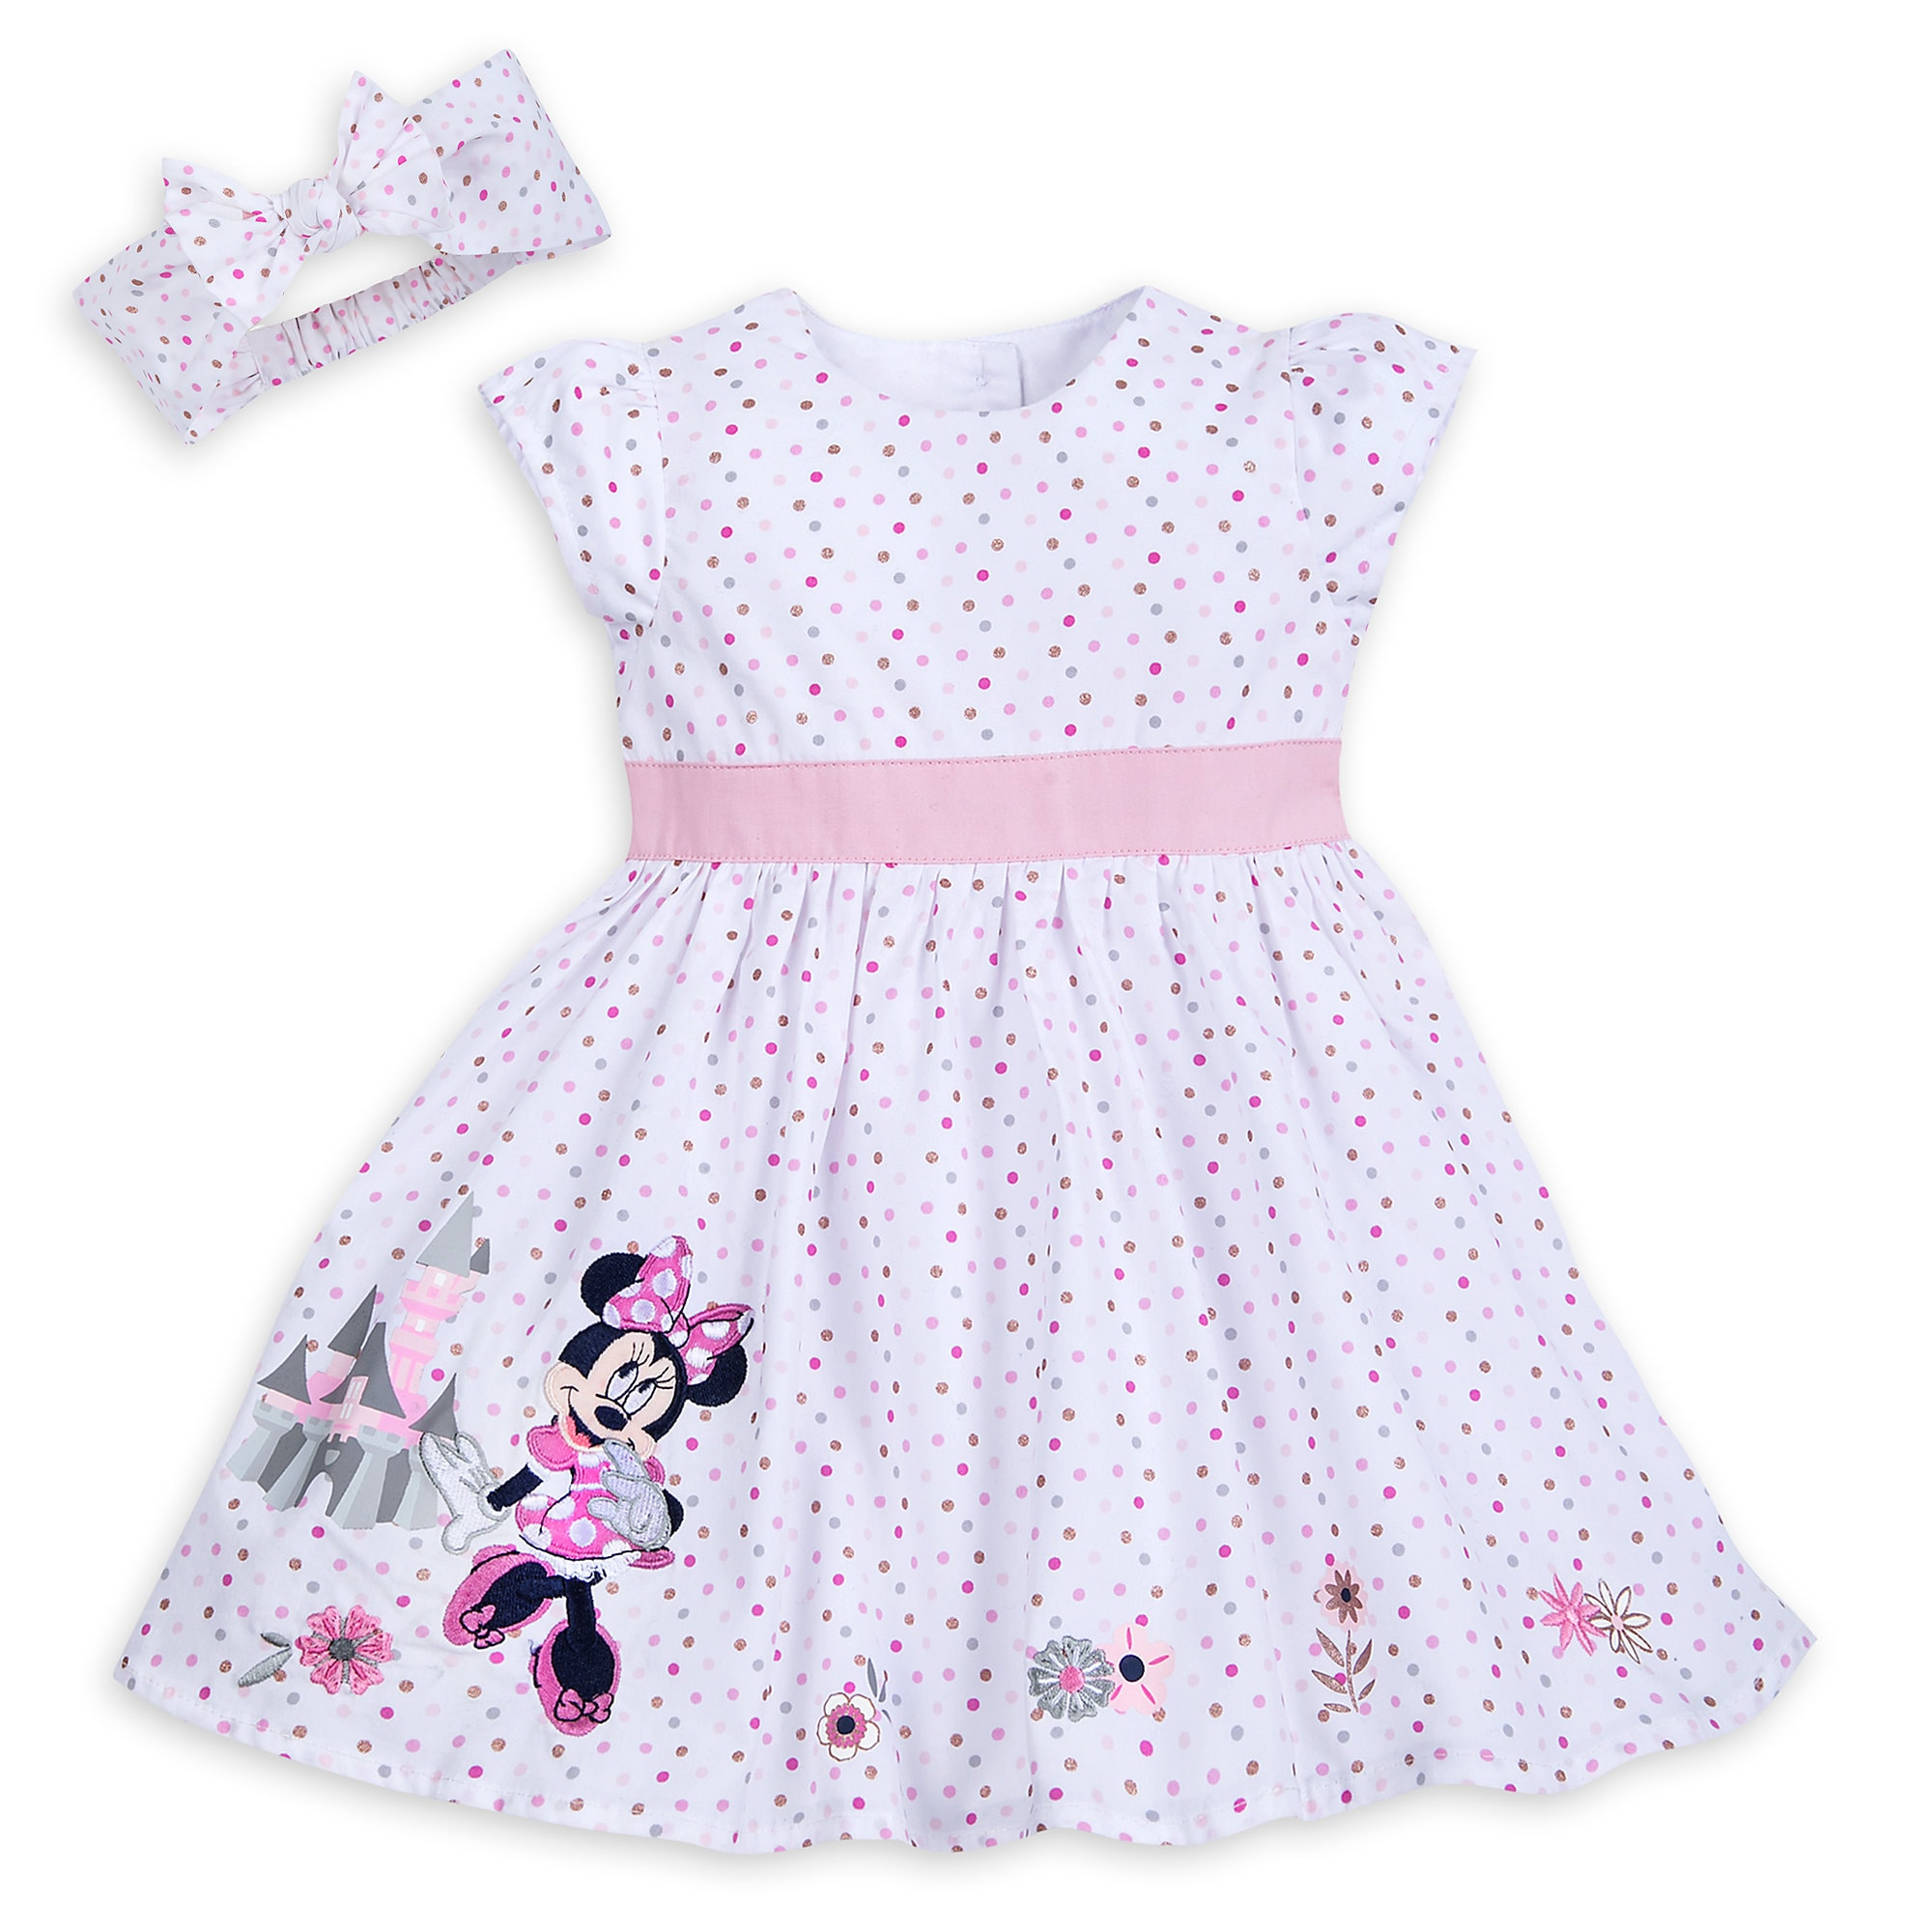 e4ff484df Minnie Mouse Dress Set for Baby is now available online